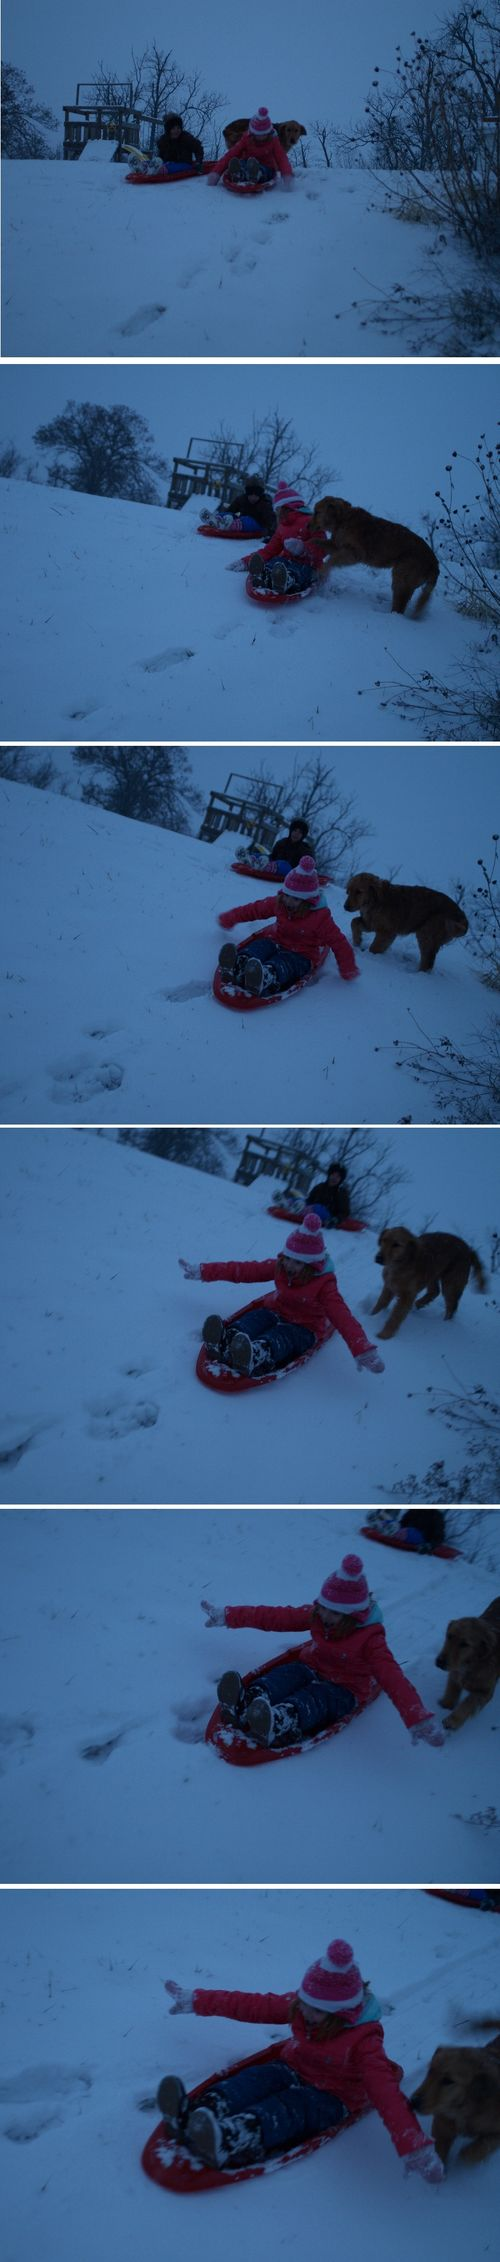 Sledsequence